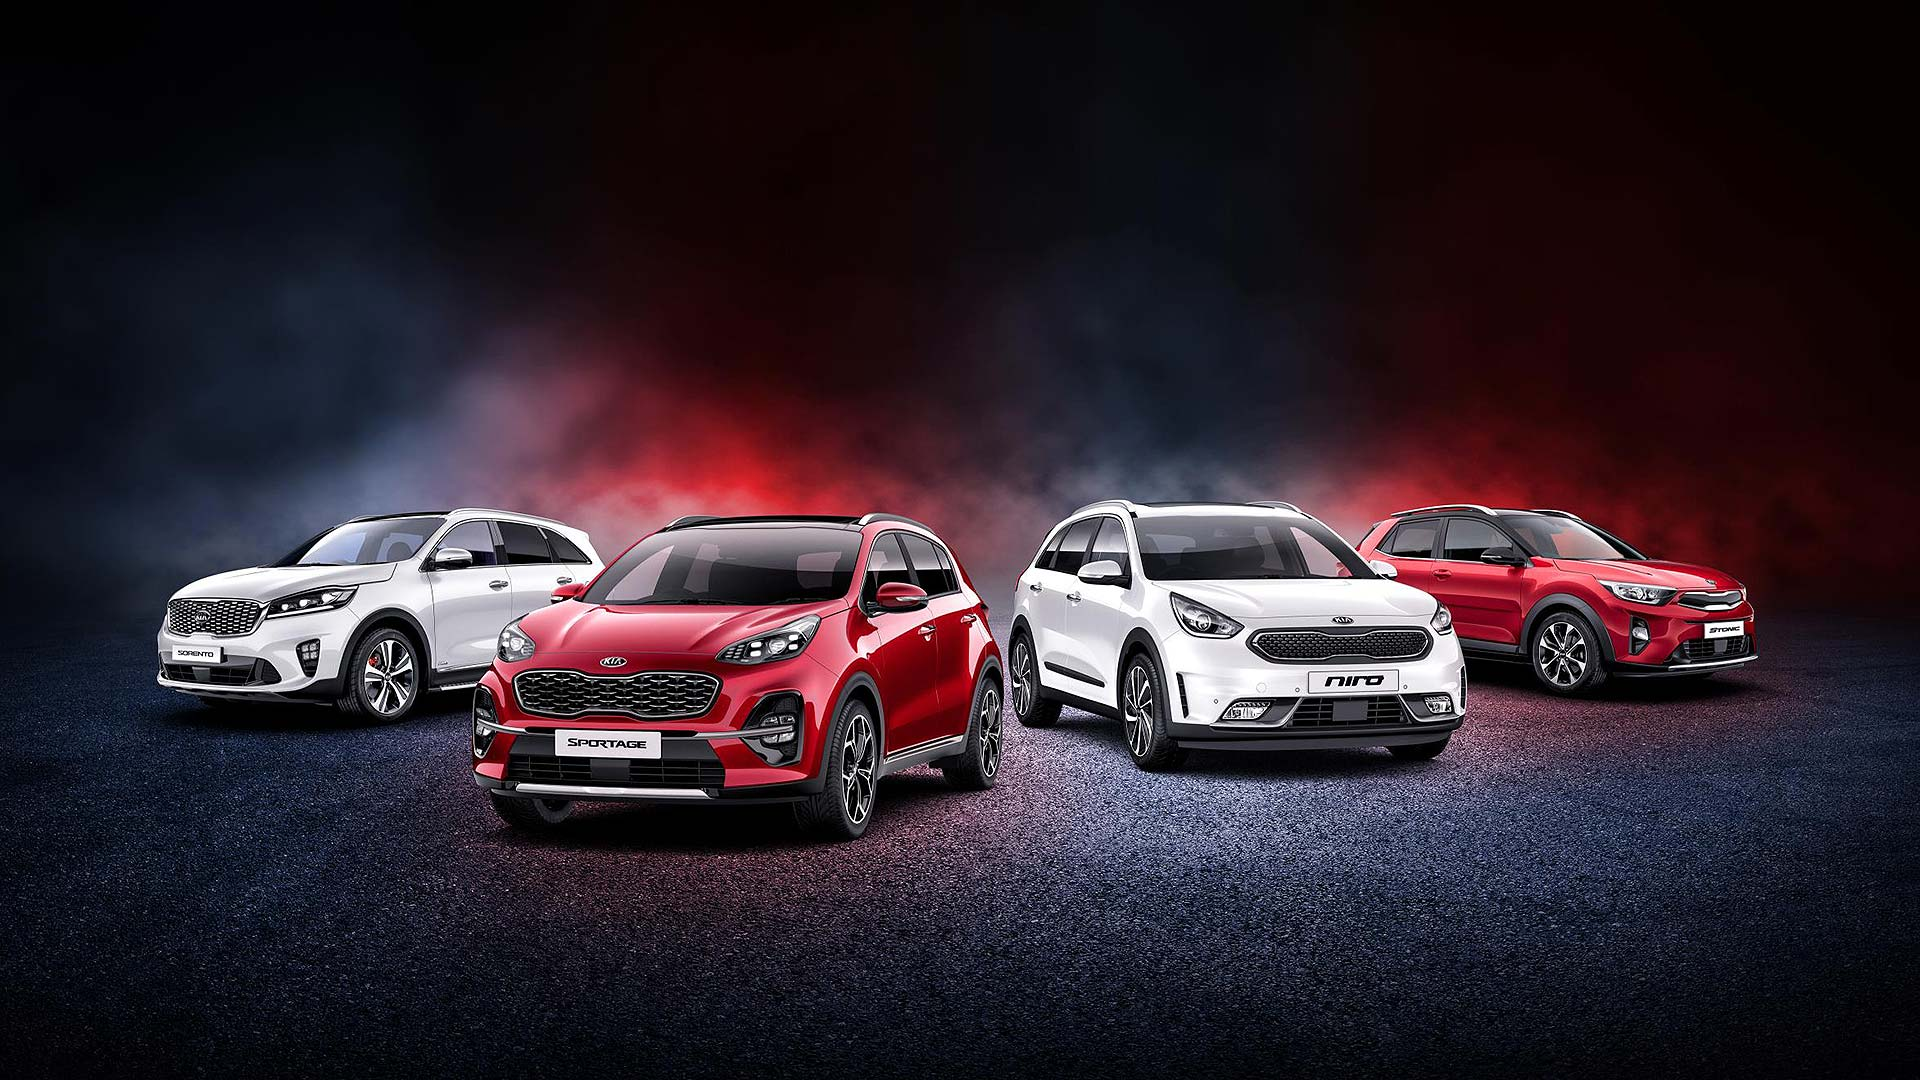 Kia 2019 winter special offers